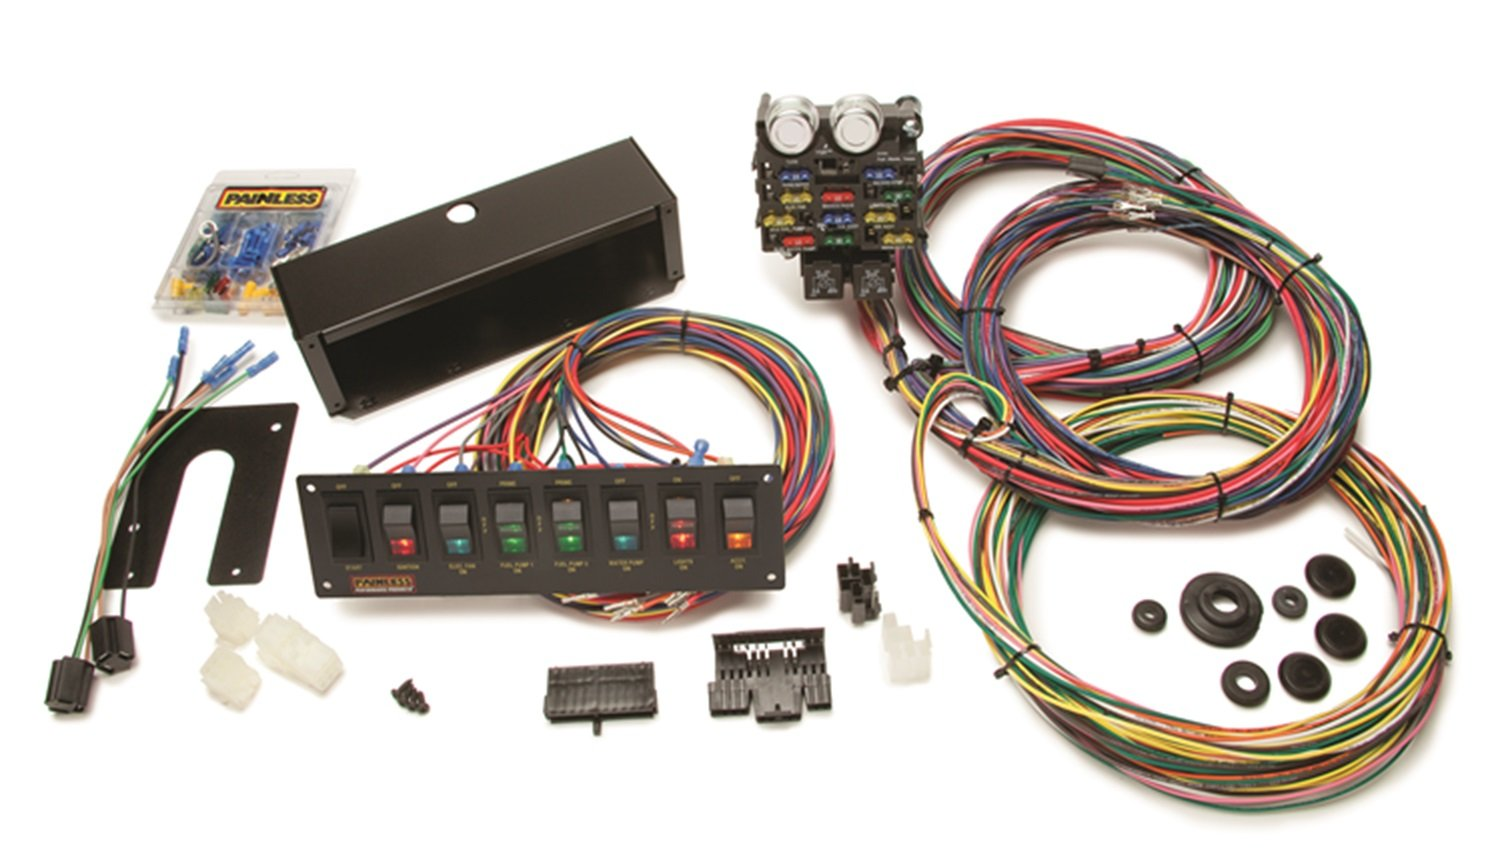 71BqRBAaHEL._SL1500_ painless wiring harness 5 0 engine swap wiring harness \u2022 free Painless Wiring Diagram Chevy at n-0.co